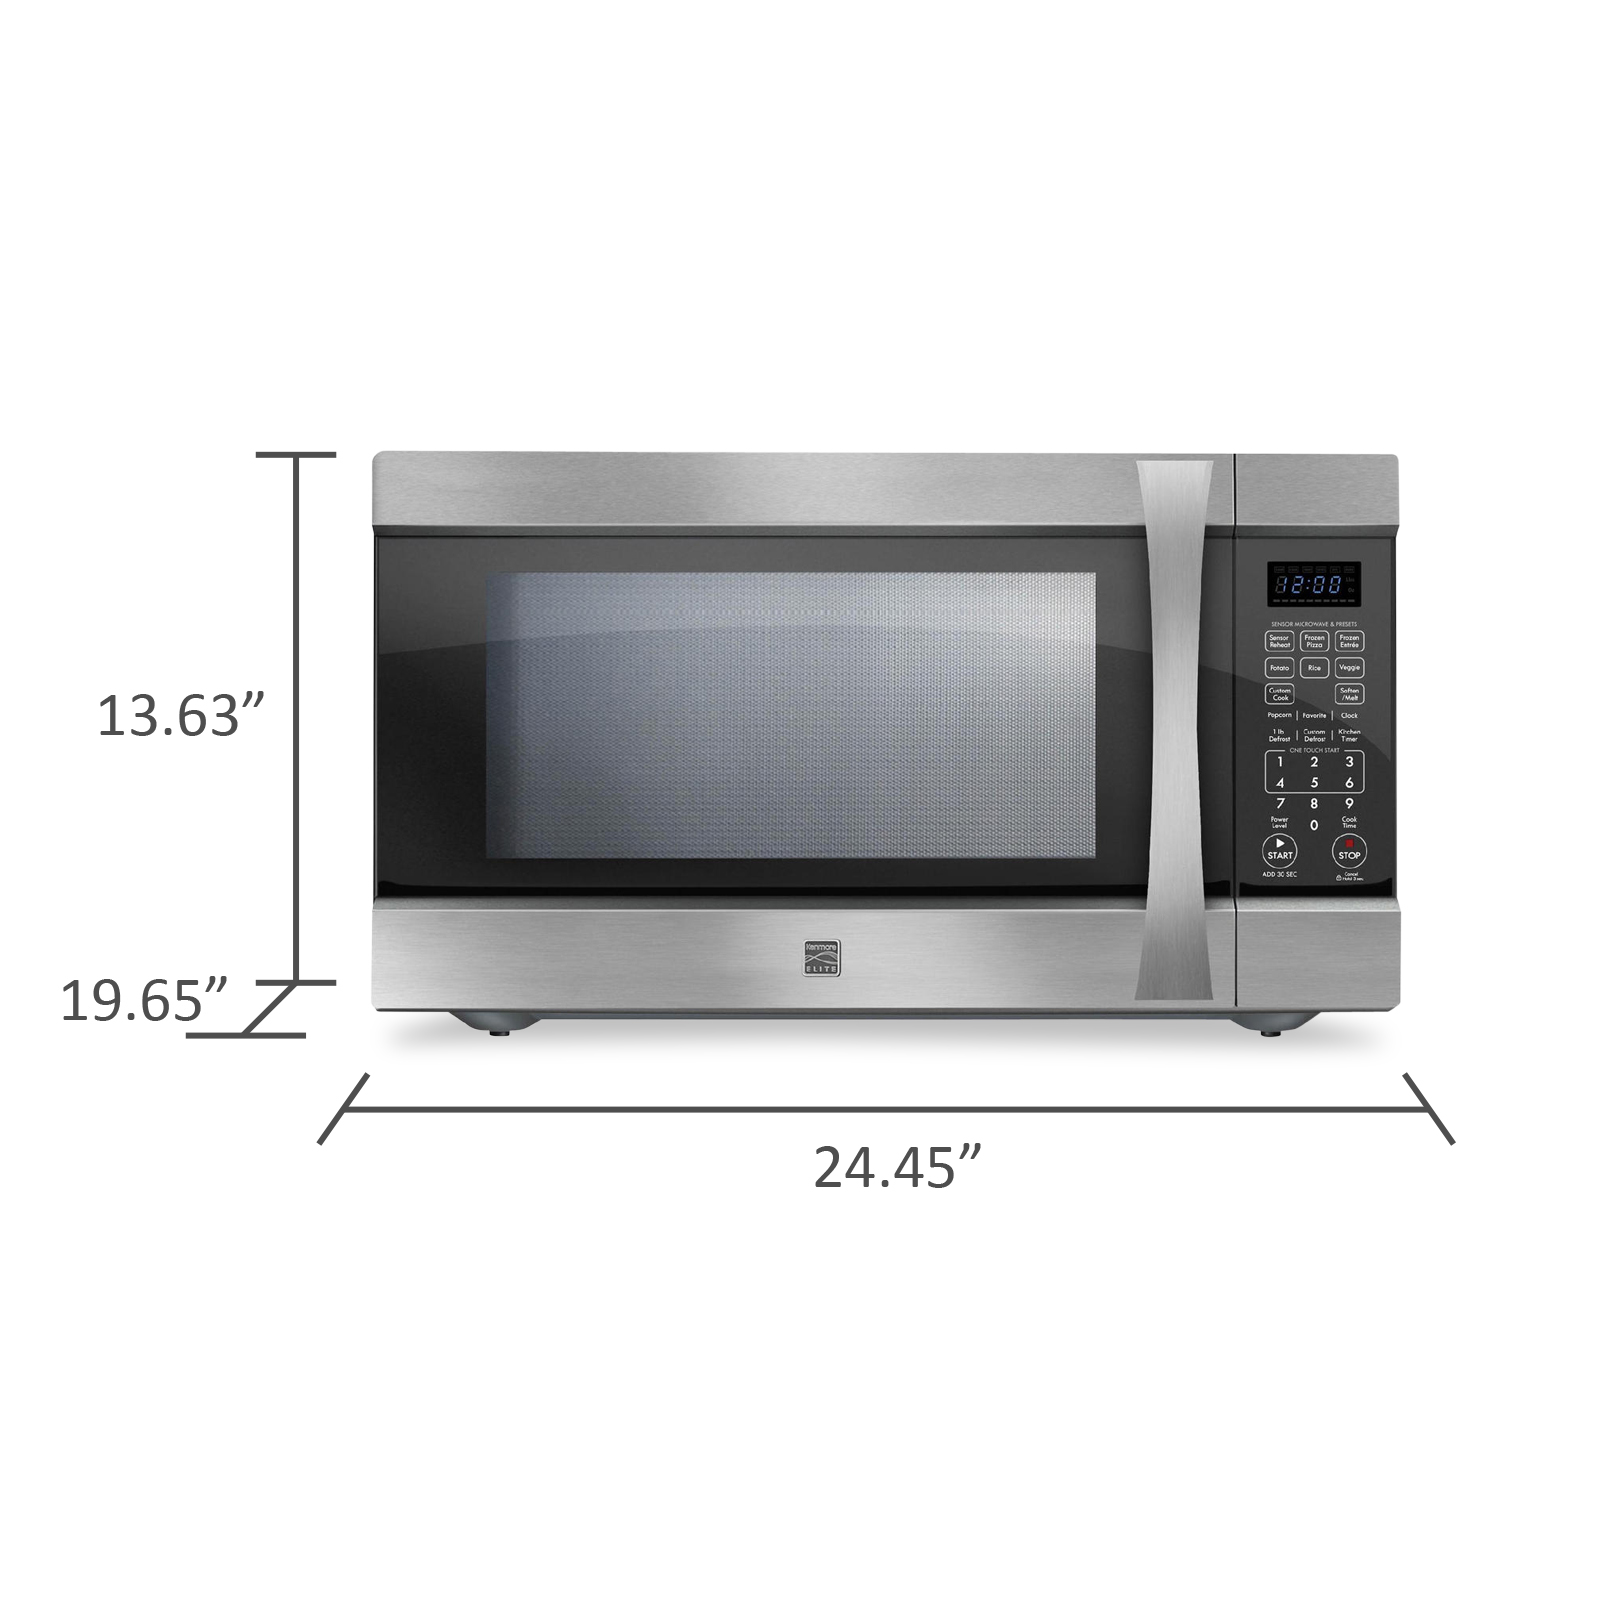 Kenmore Elite 75223 2.2 cu. ft. Countertop Microwave w/ Extra-Large Capacity - Stainless Steel